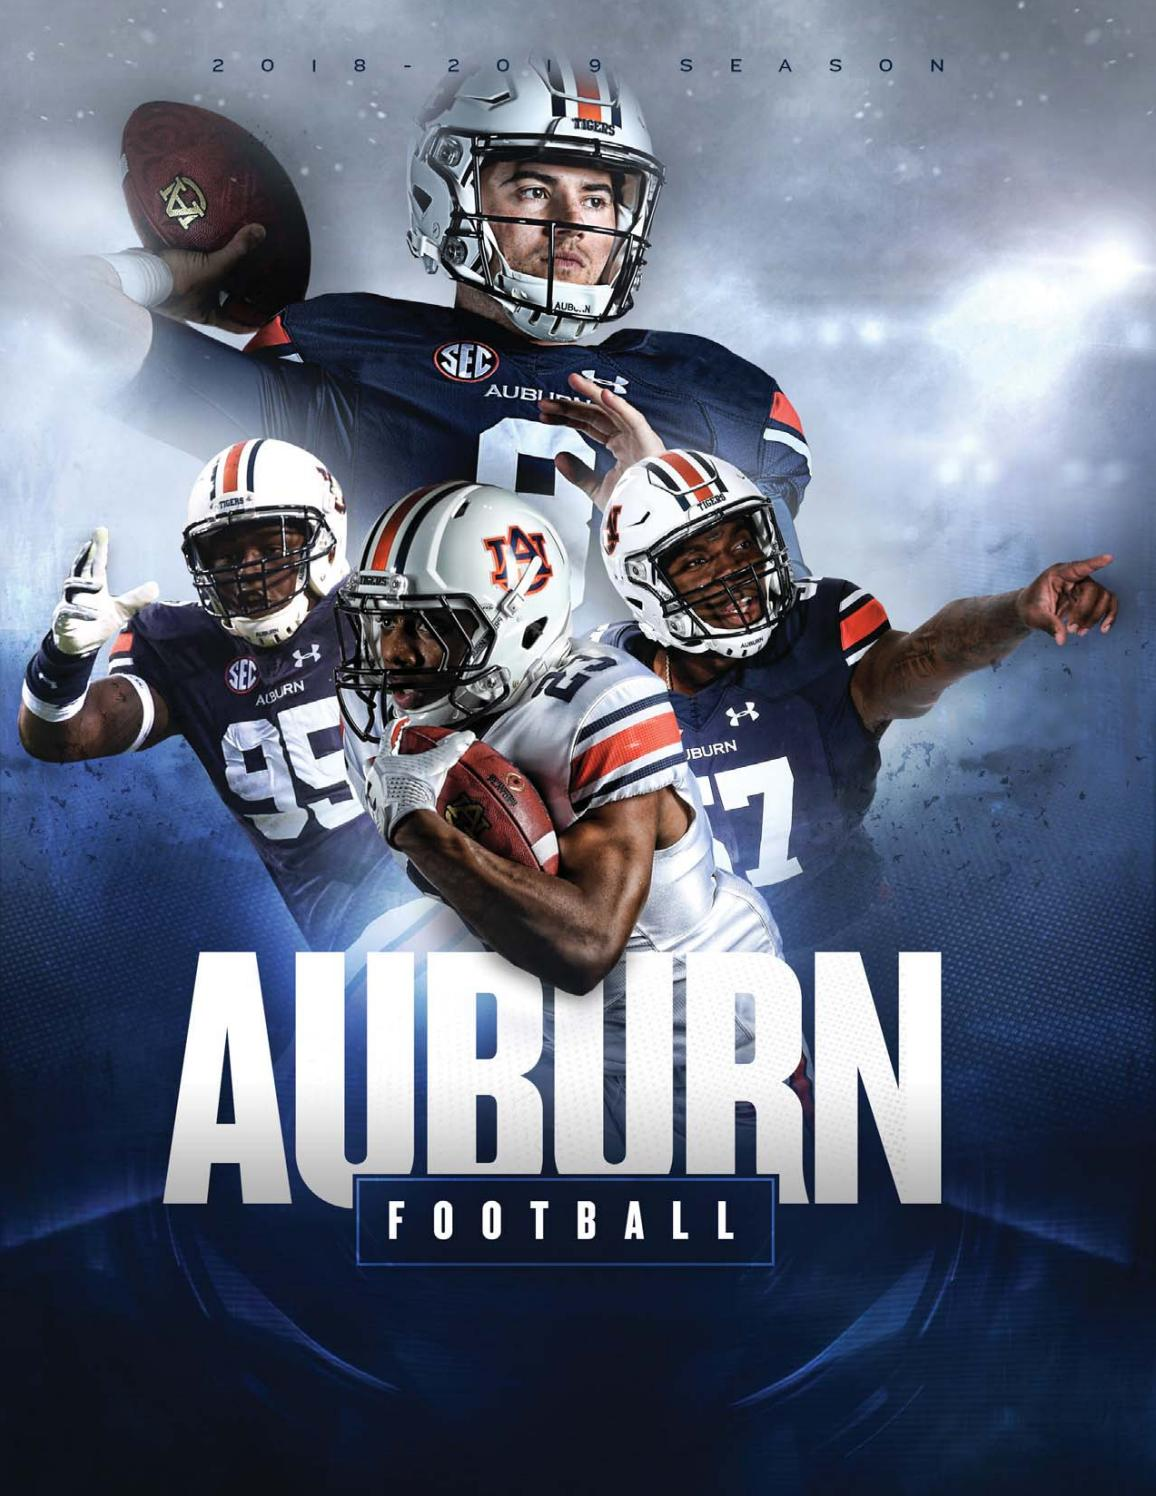 b9e301d67 2018 auburn football media guide by Mexico Sports Collectibles - issuu